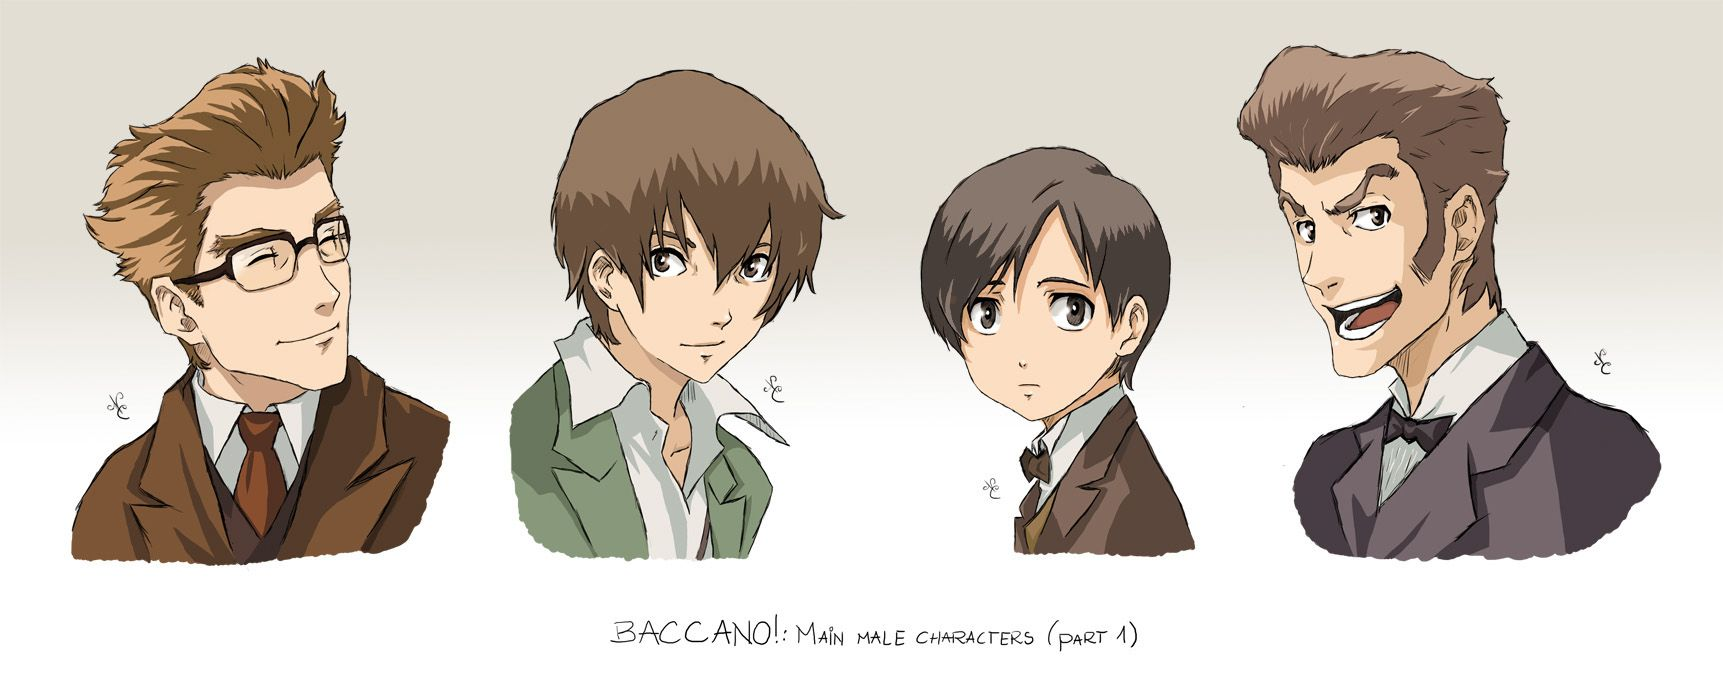 Baccano Characters Part 5 By Nicolecover On Deviantart Baccano Old Anime Art